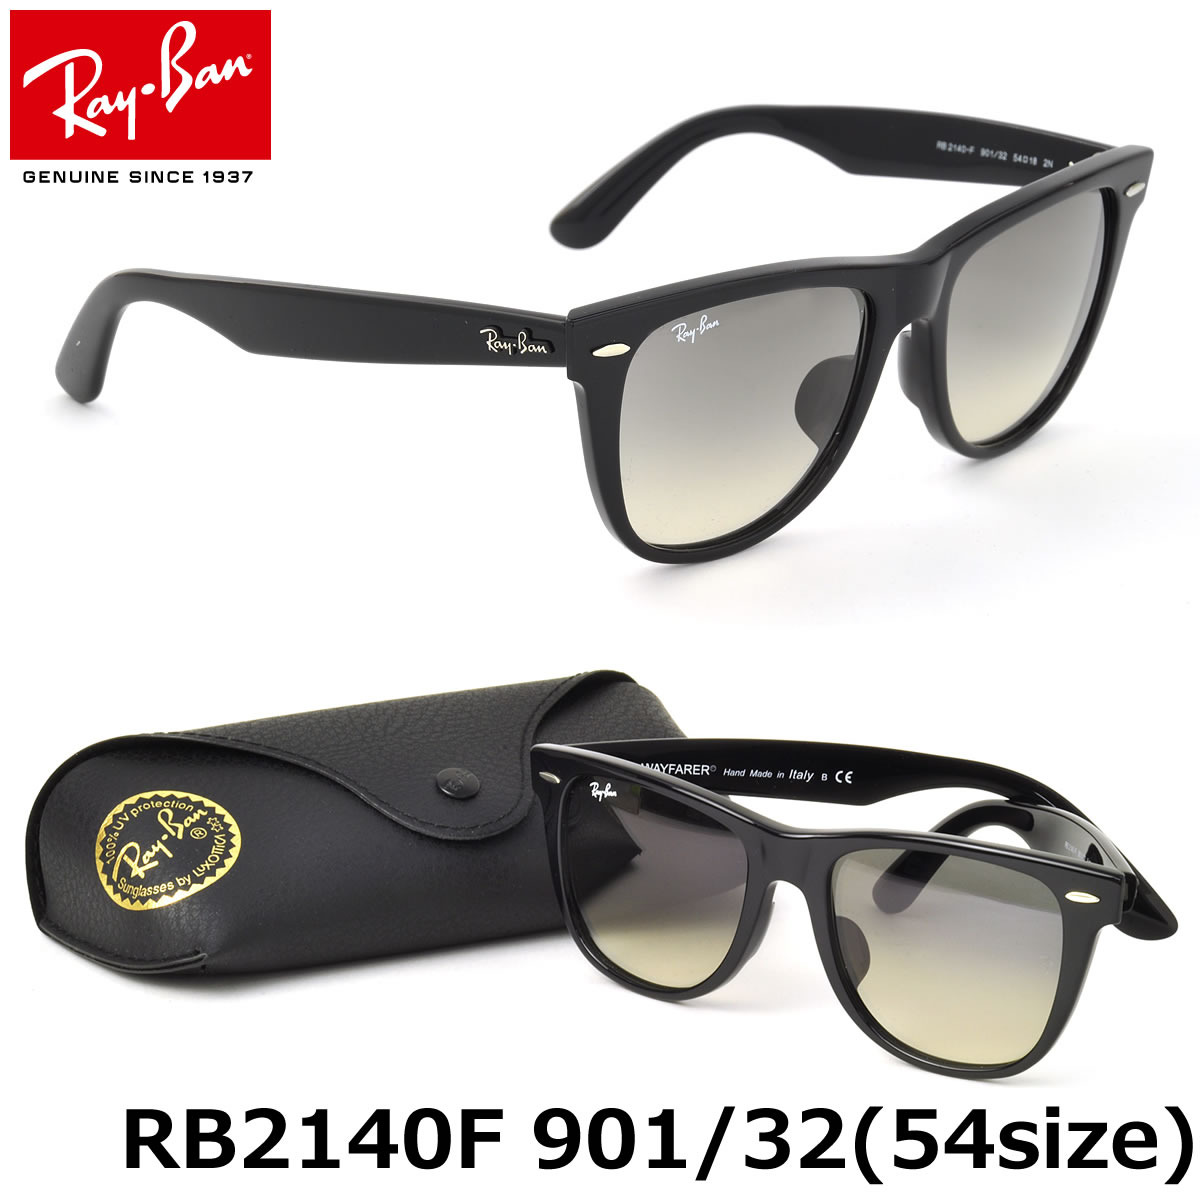 51b58efdc6 Ray-Ban Sunglasses RB2140F 901 32 54size WAYFARER FULL FIT (for Asian)  GENUINE NEW rayban ray ban